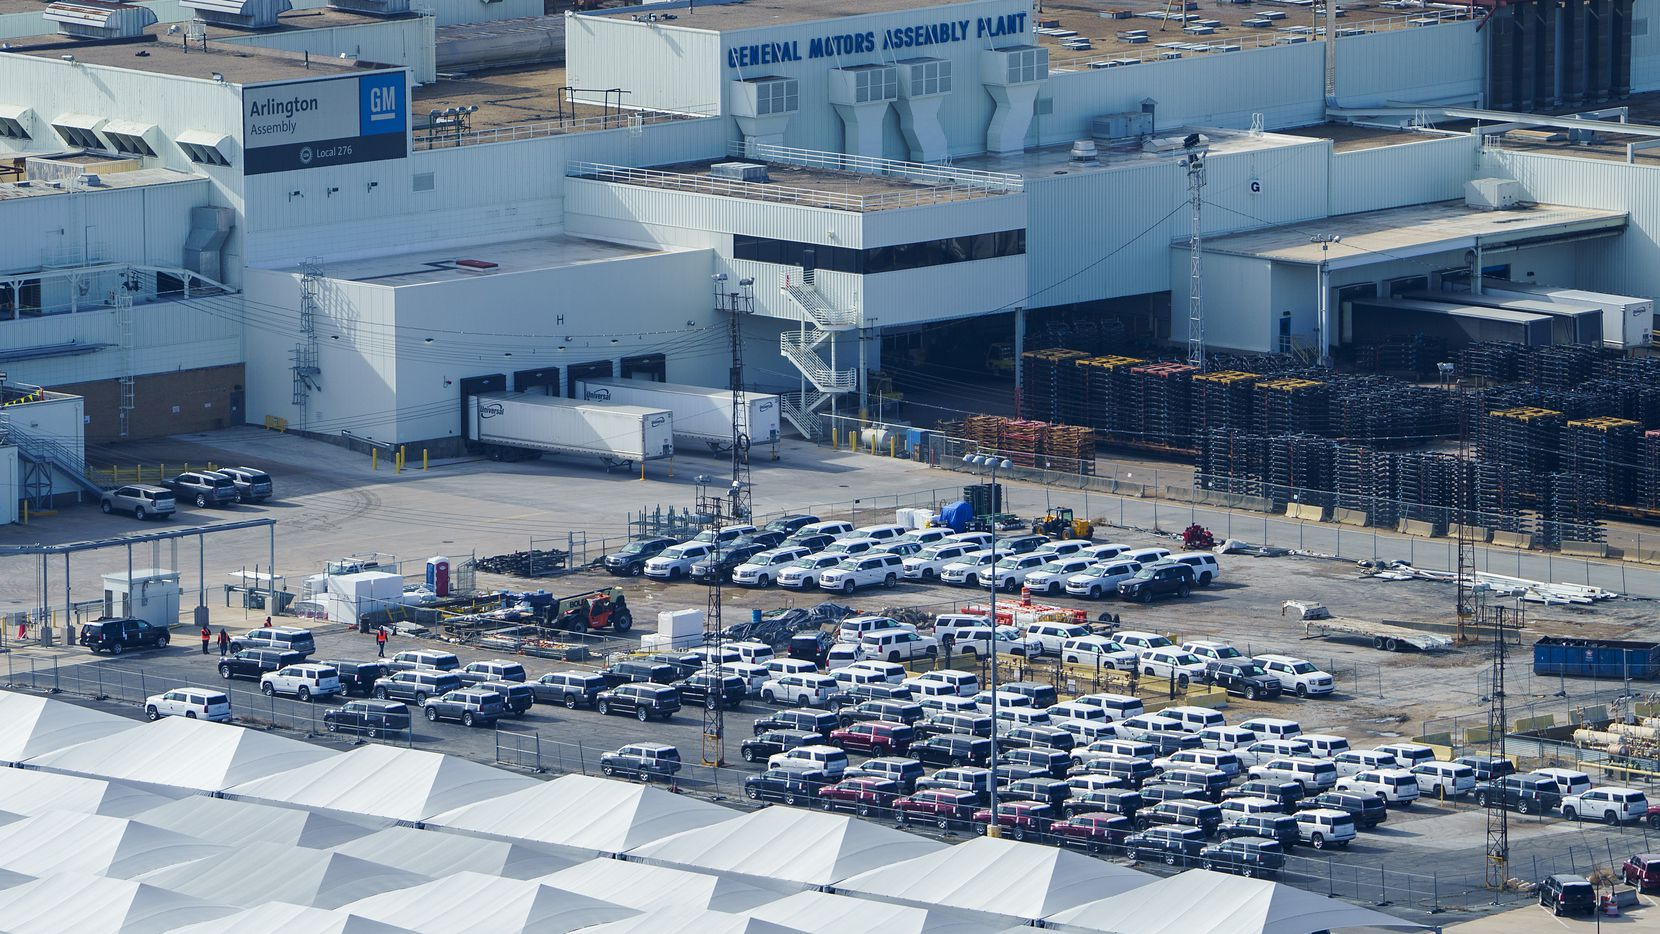 Aerial view of the General Motors Assembly Plant in Arlington, Texas.